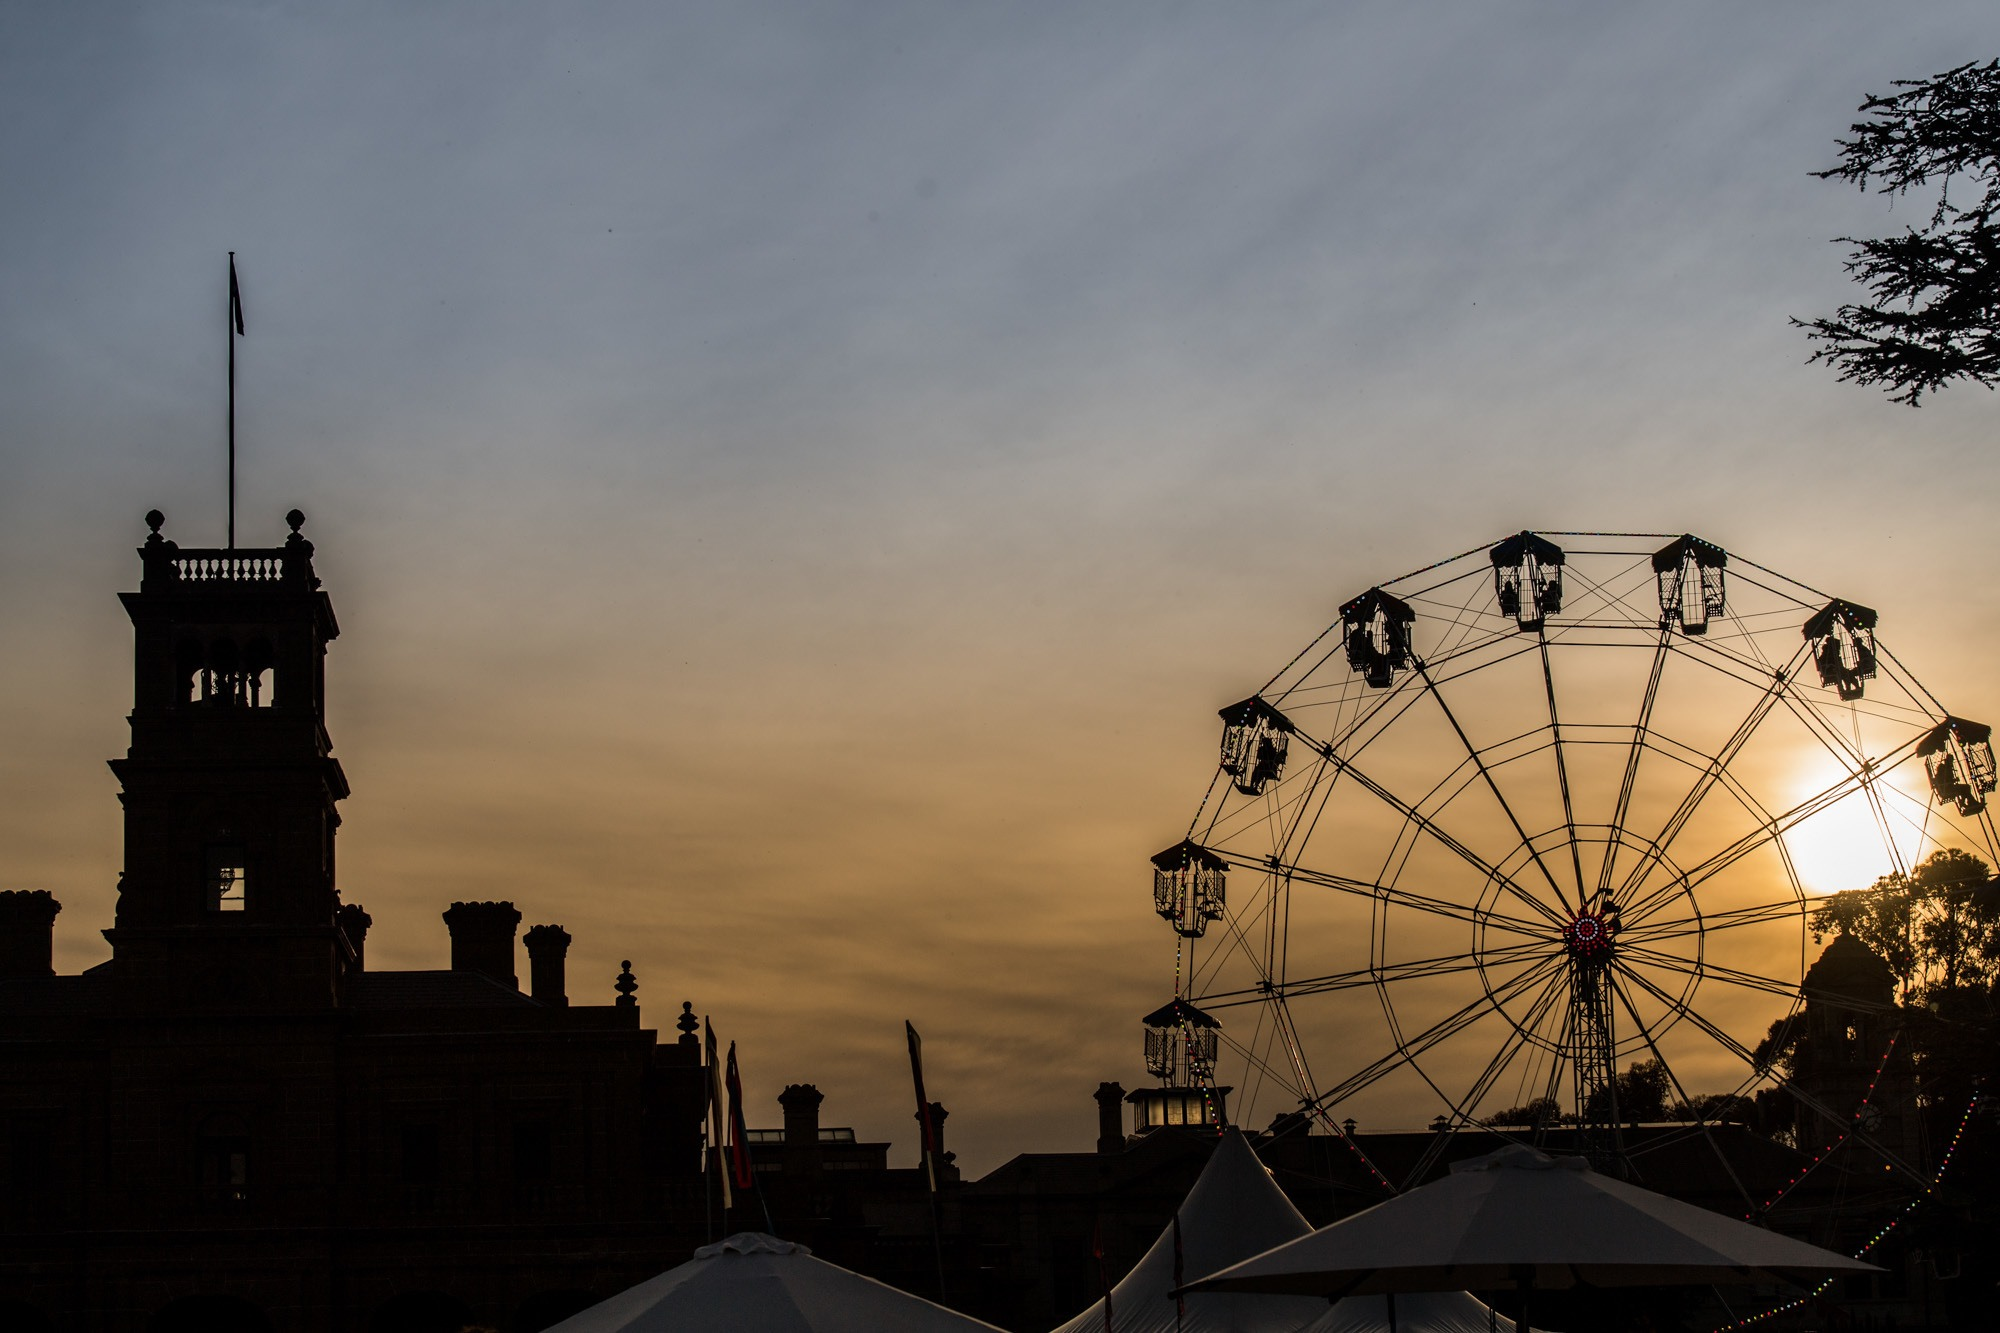 The Werribee Mansion and ferris wheel at sunset